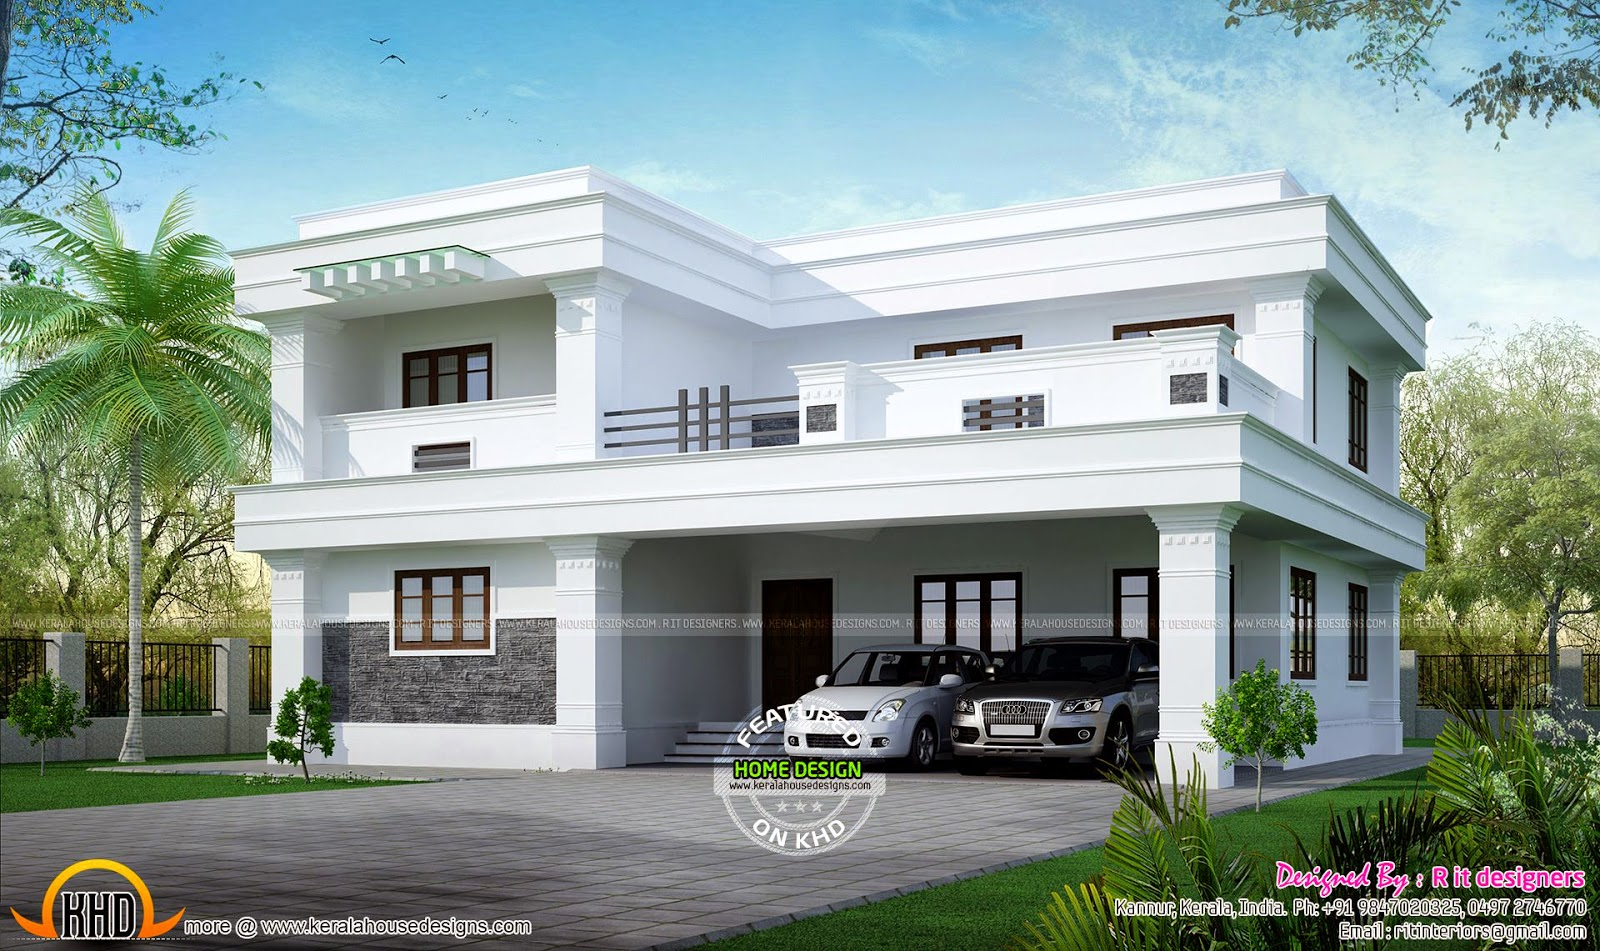 Front Elevation Designs In Bangalore : Exterior house design in bangalore front